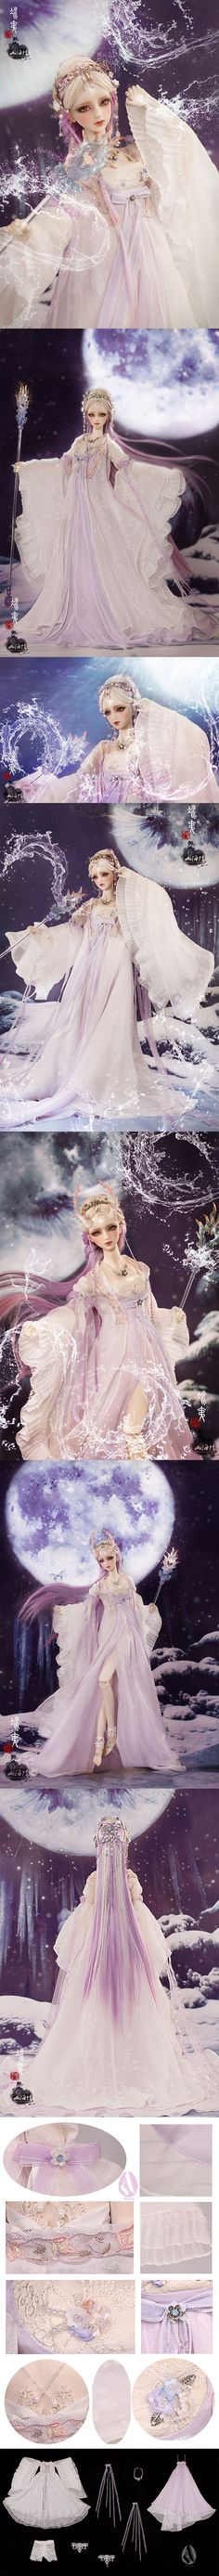 Bjd Clothes Youth Girl Bjd Ancient Chinese Style Dress Fullset/BY CL36220160427…